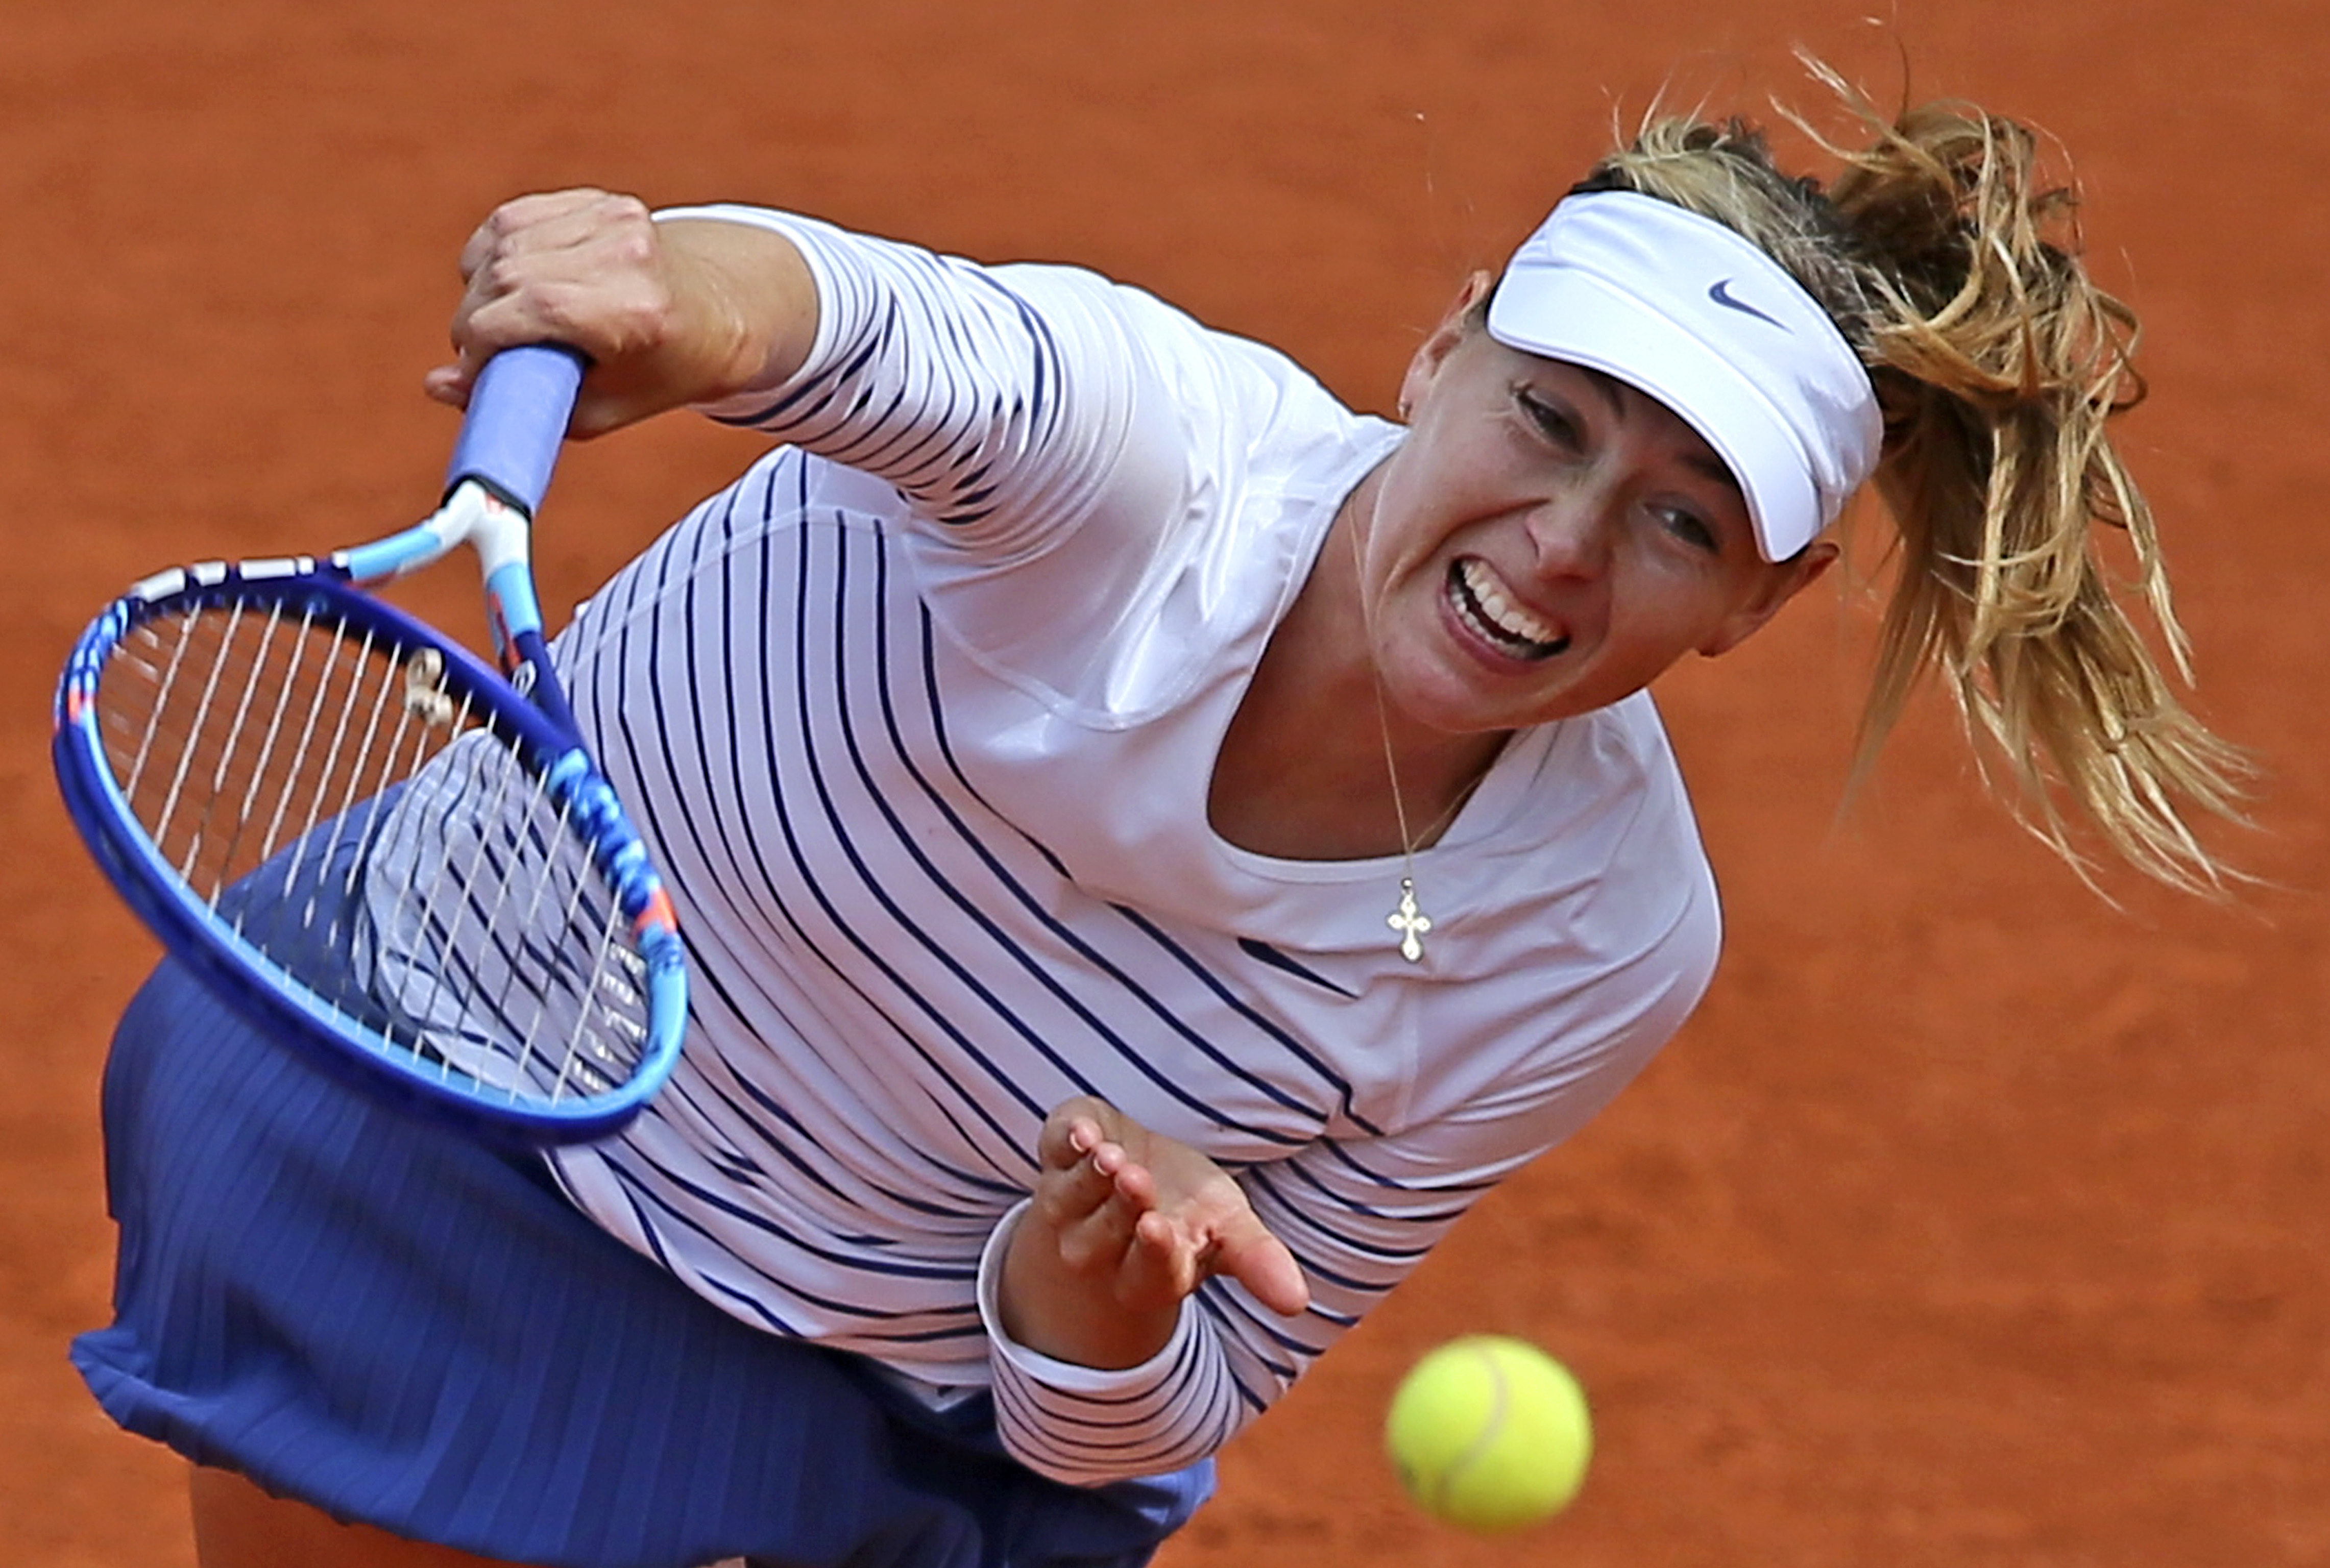 FILE - In this June 1, 2015, file photo, Russia's Maria Sharapova serves the ball to Lucie Safarova of the Czech Republic during a fourth round match of the French Open tennis tournament at Roland Garros Stadium in Paris, France. The highest court in spor